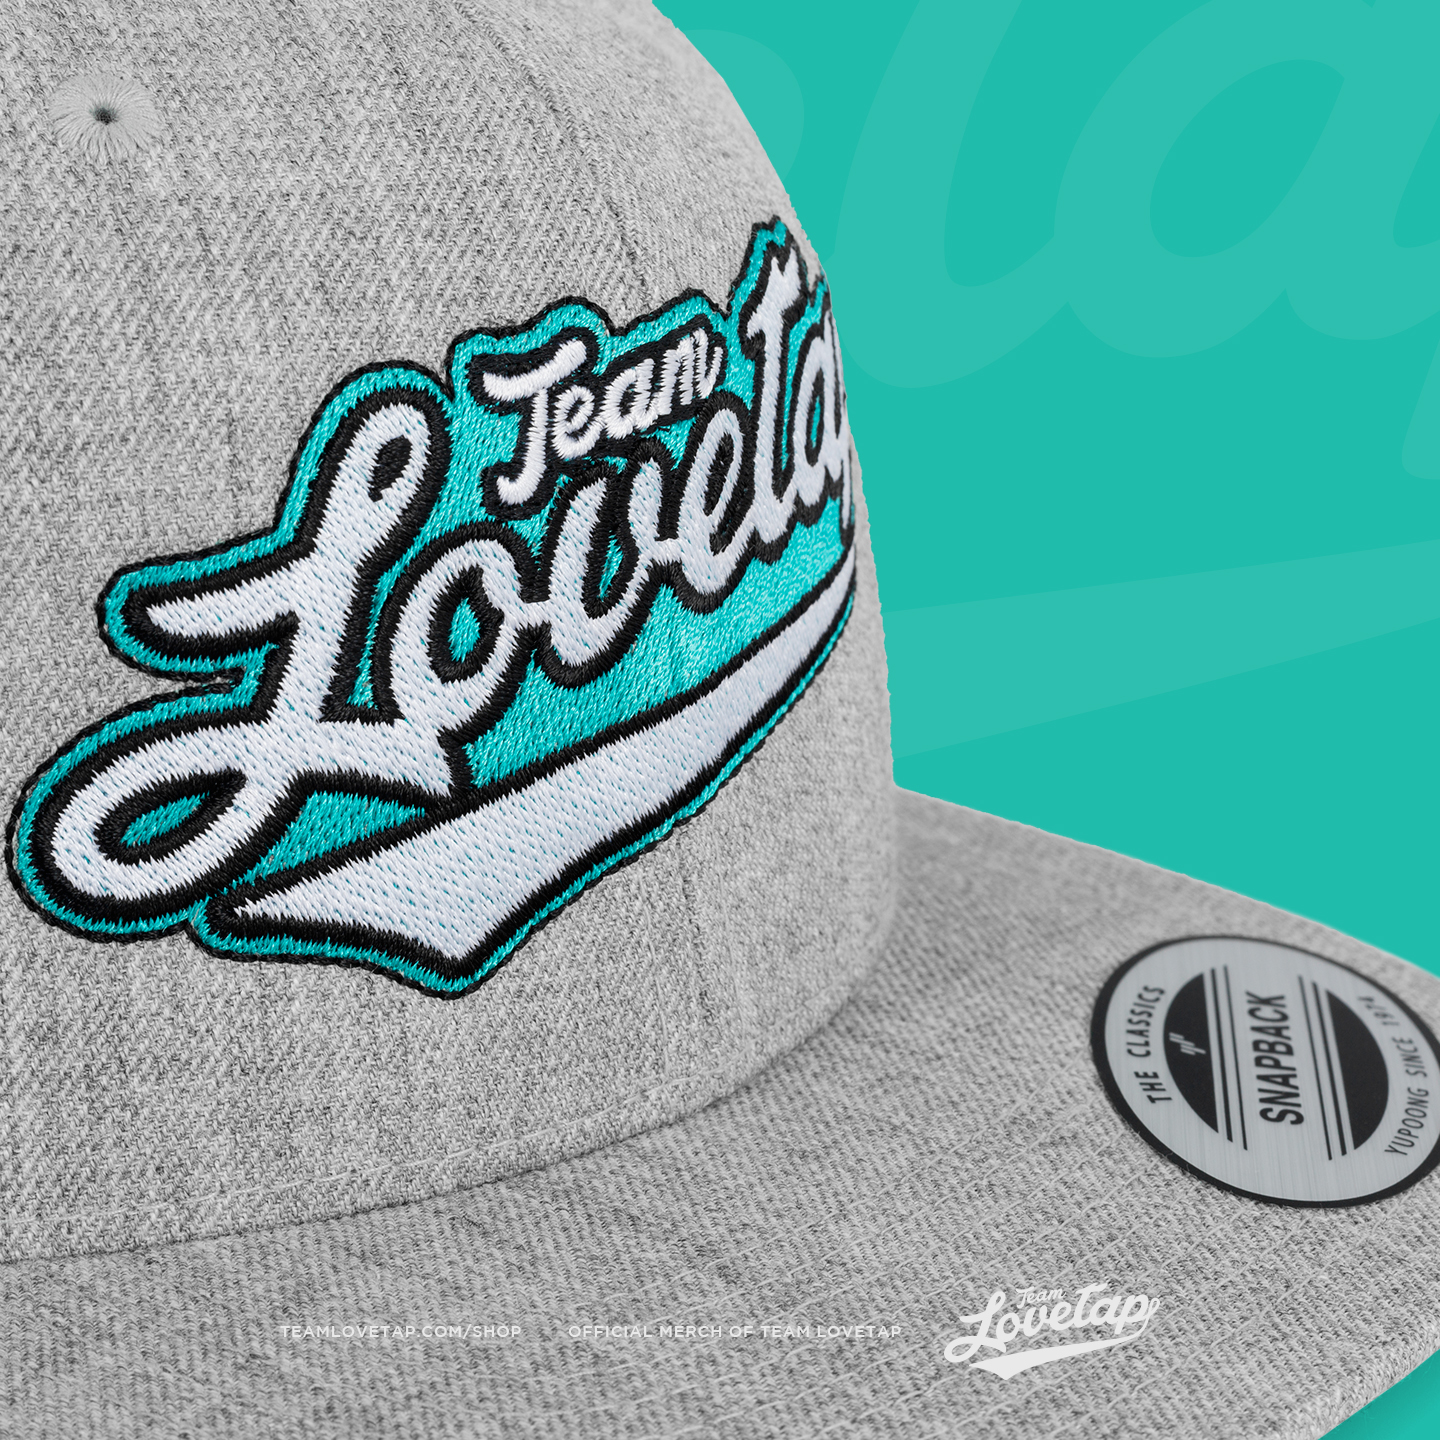 snapback_lightgray_teamlovetap_06.jpg